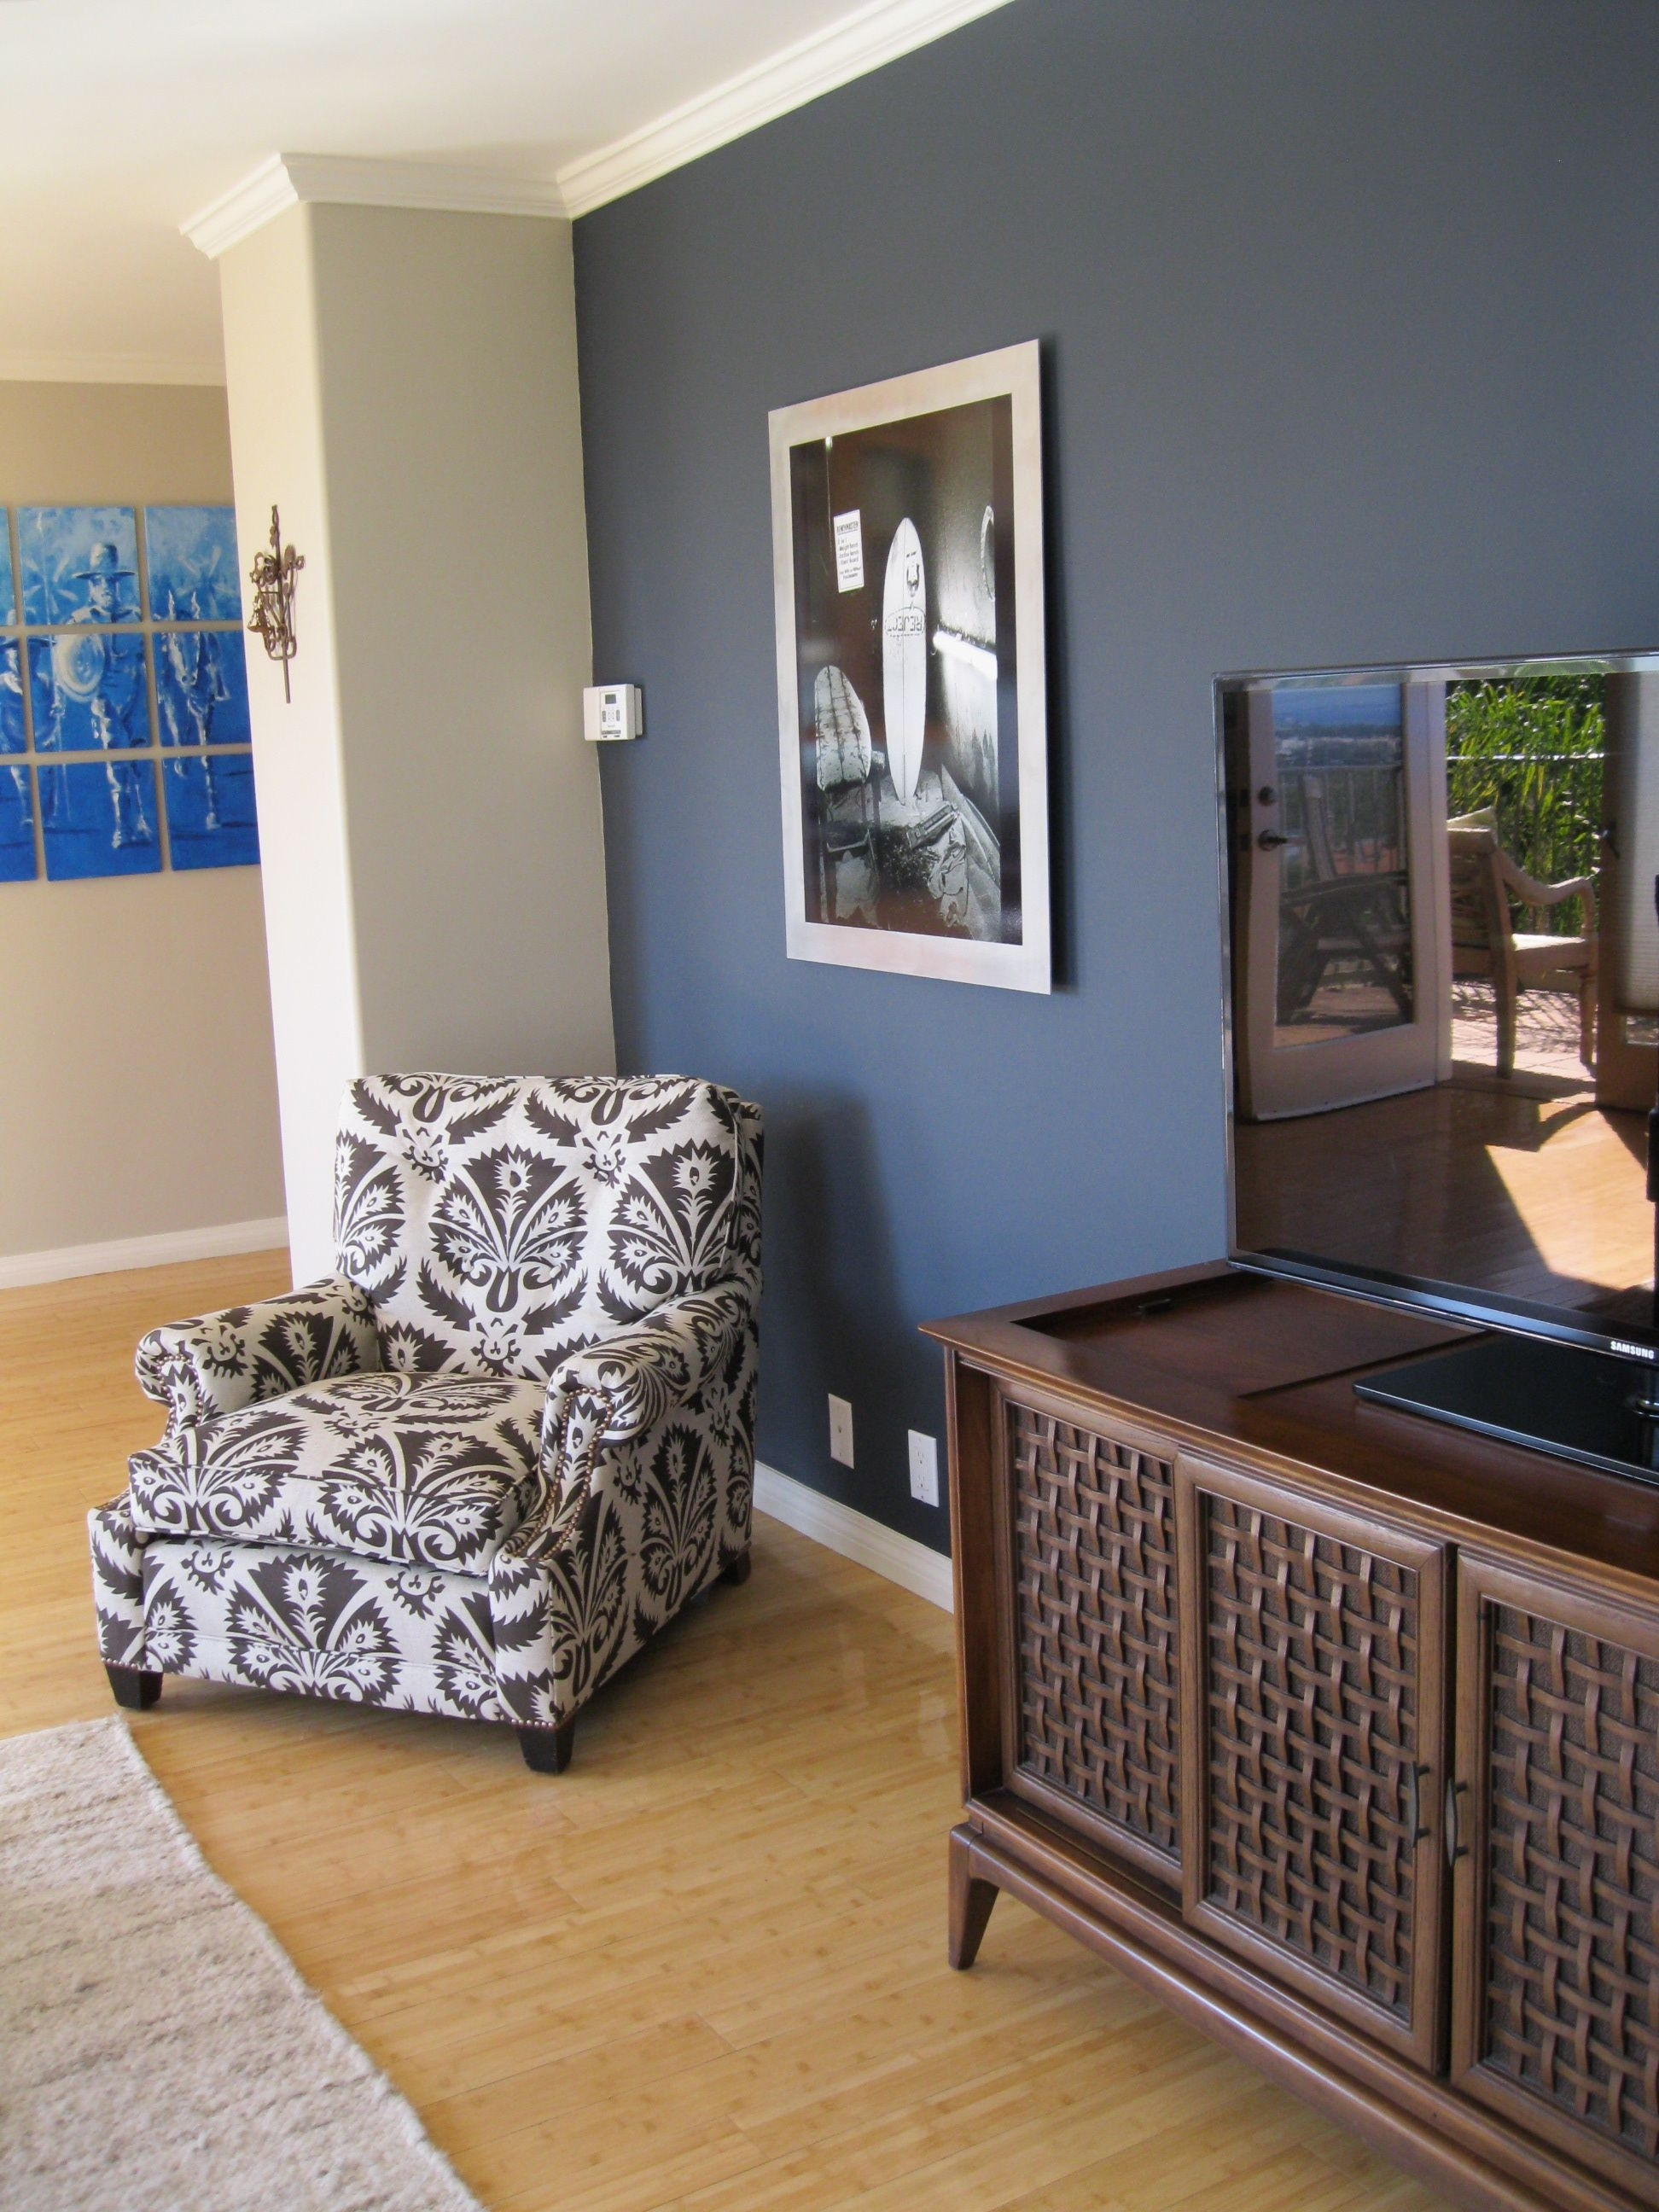 Shade Of Blue On Wall Camoflauges Tv. Love The Chair Too! | Home With Regard To 2017 Wall Accents For Tan Room (Gallery 13 of 15)